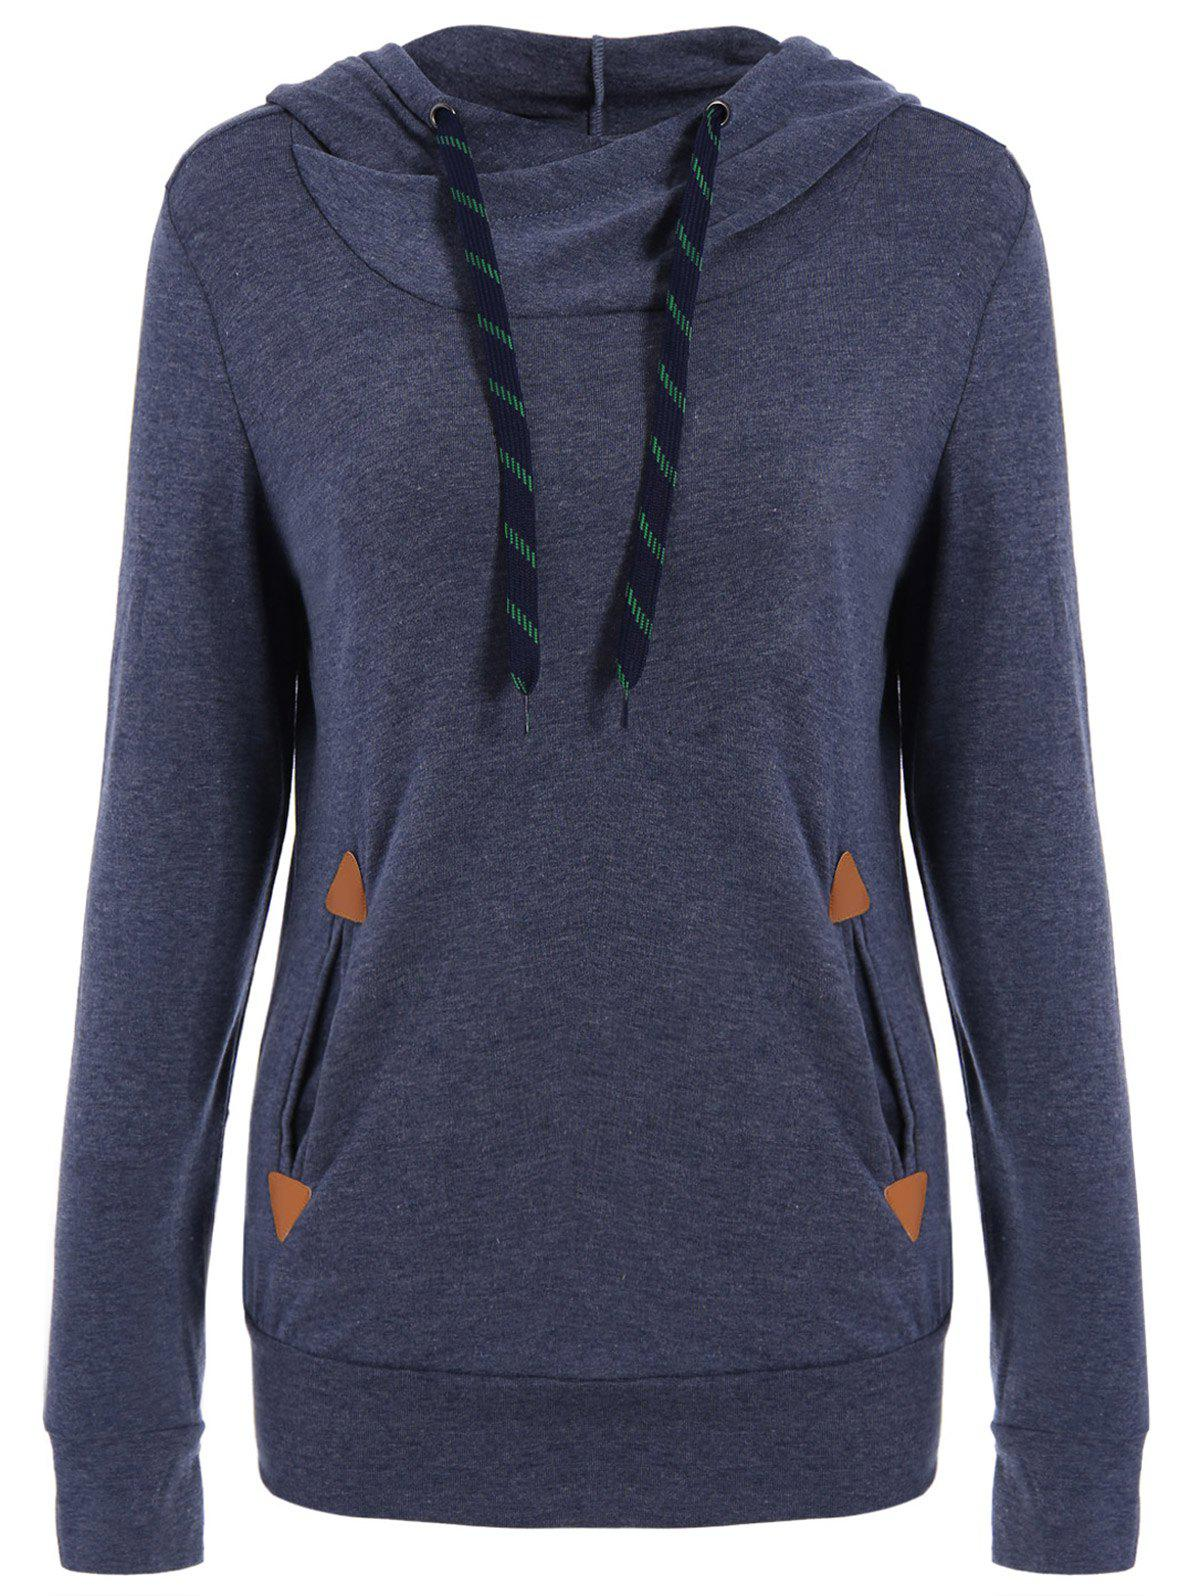 Drawstring Pocket Design Embroidered HoodieWOMEN<br><br>Size: M; Color: PURPLISH BLUE; Material: Polyester; Shirt Length: Long; Sleeve Length: Full; Style: Fashion; Pattern Style: Patchwork; Weight: 0.420kg; Package Contents: 1 x Hoodie;